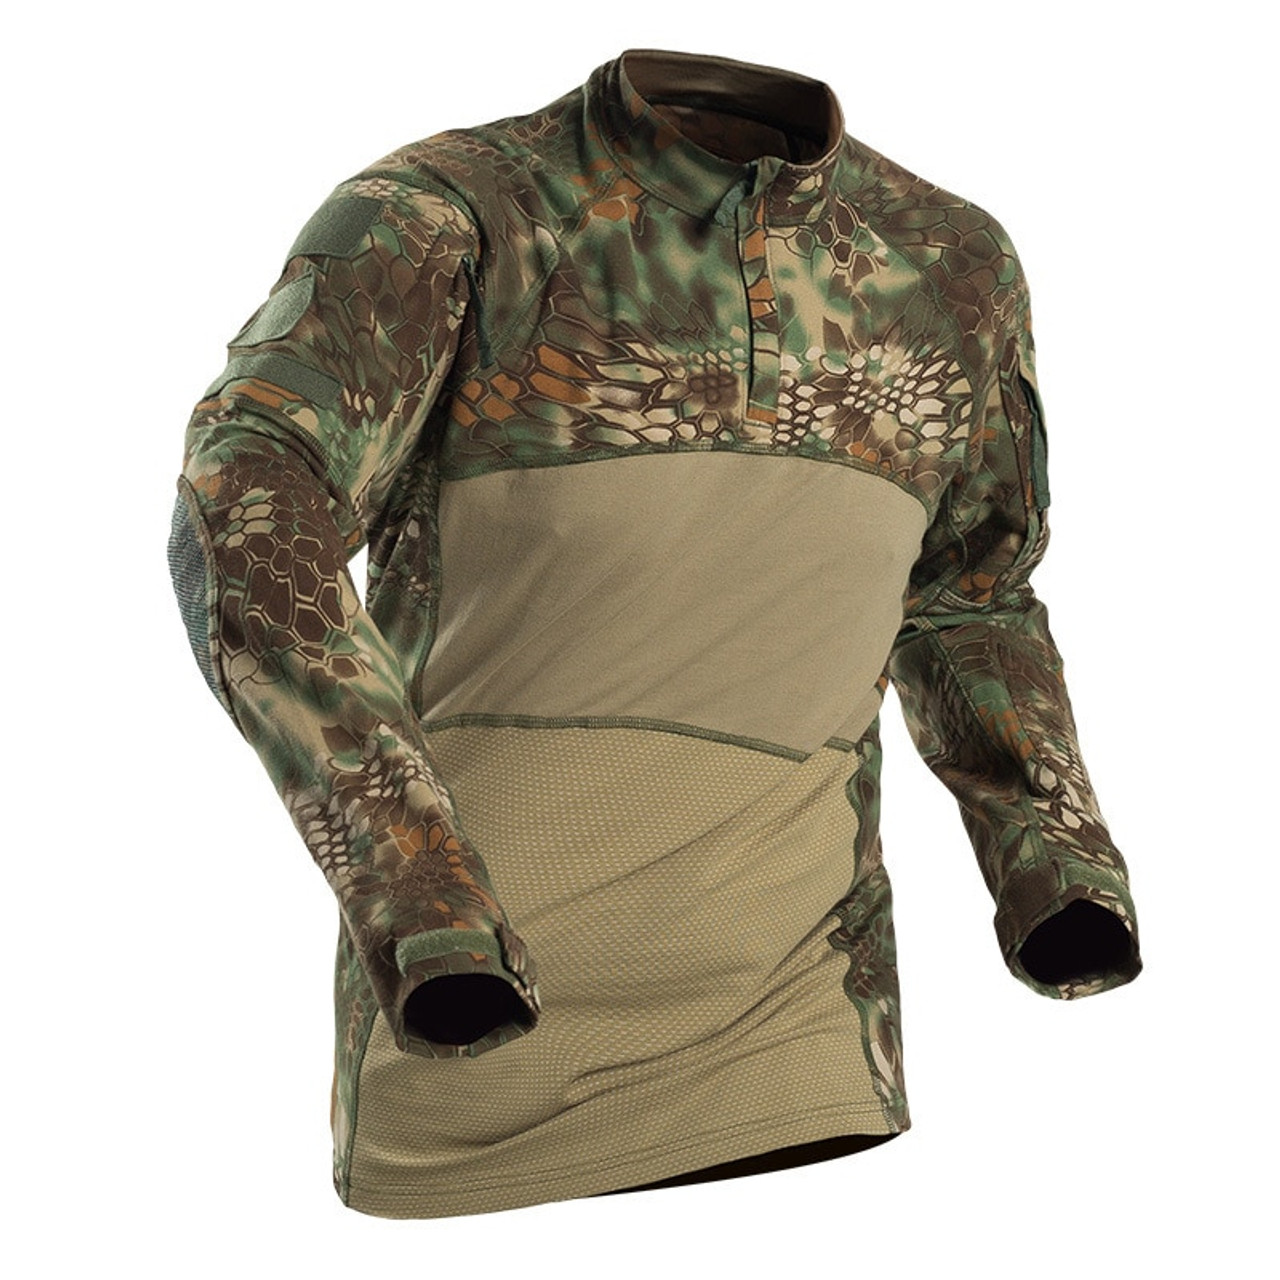 ... Mege Brand Military Tactical Clothing Camouflage Men Army Long Sleeve  Soldiers Combat Airsoft Uniform Multicam Shirt ... f4f4f47d0dc5